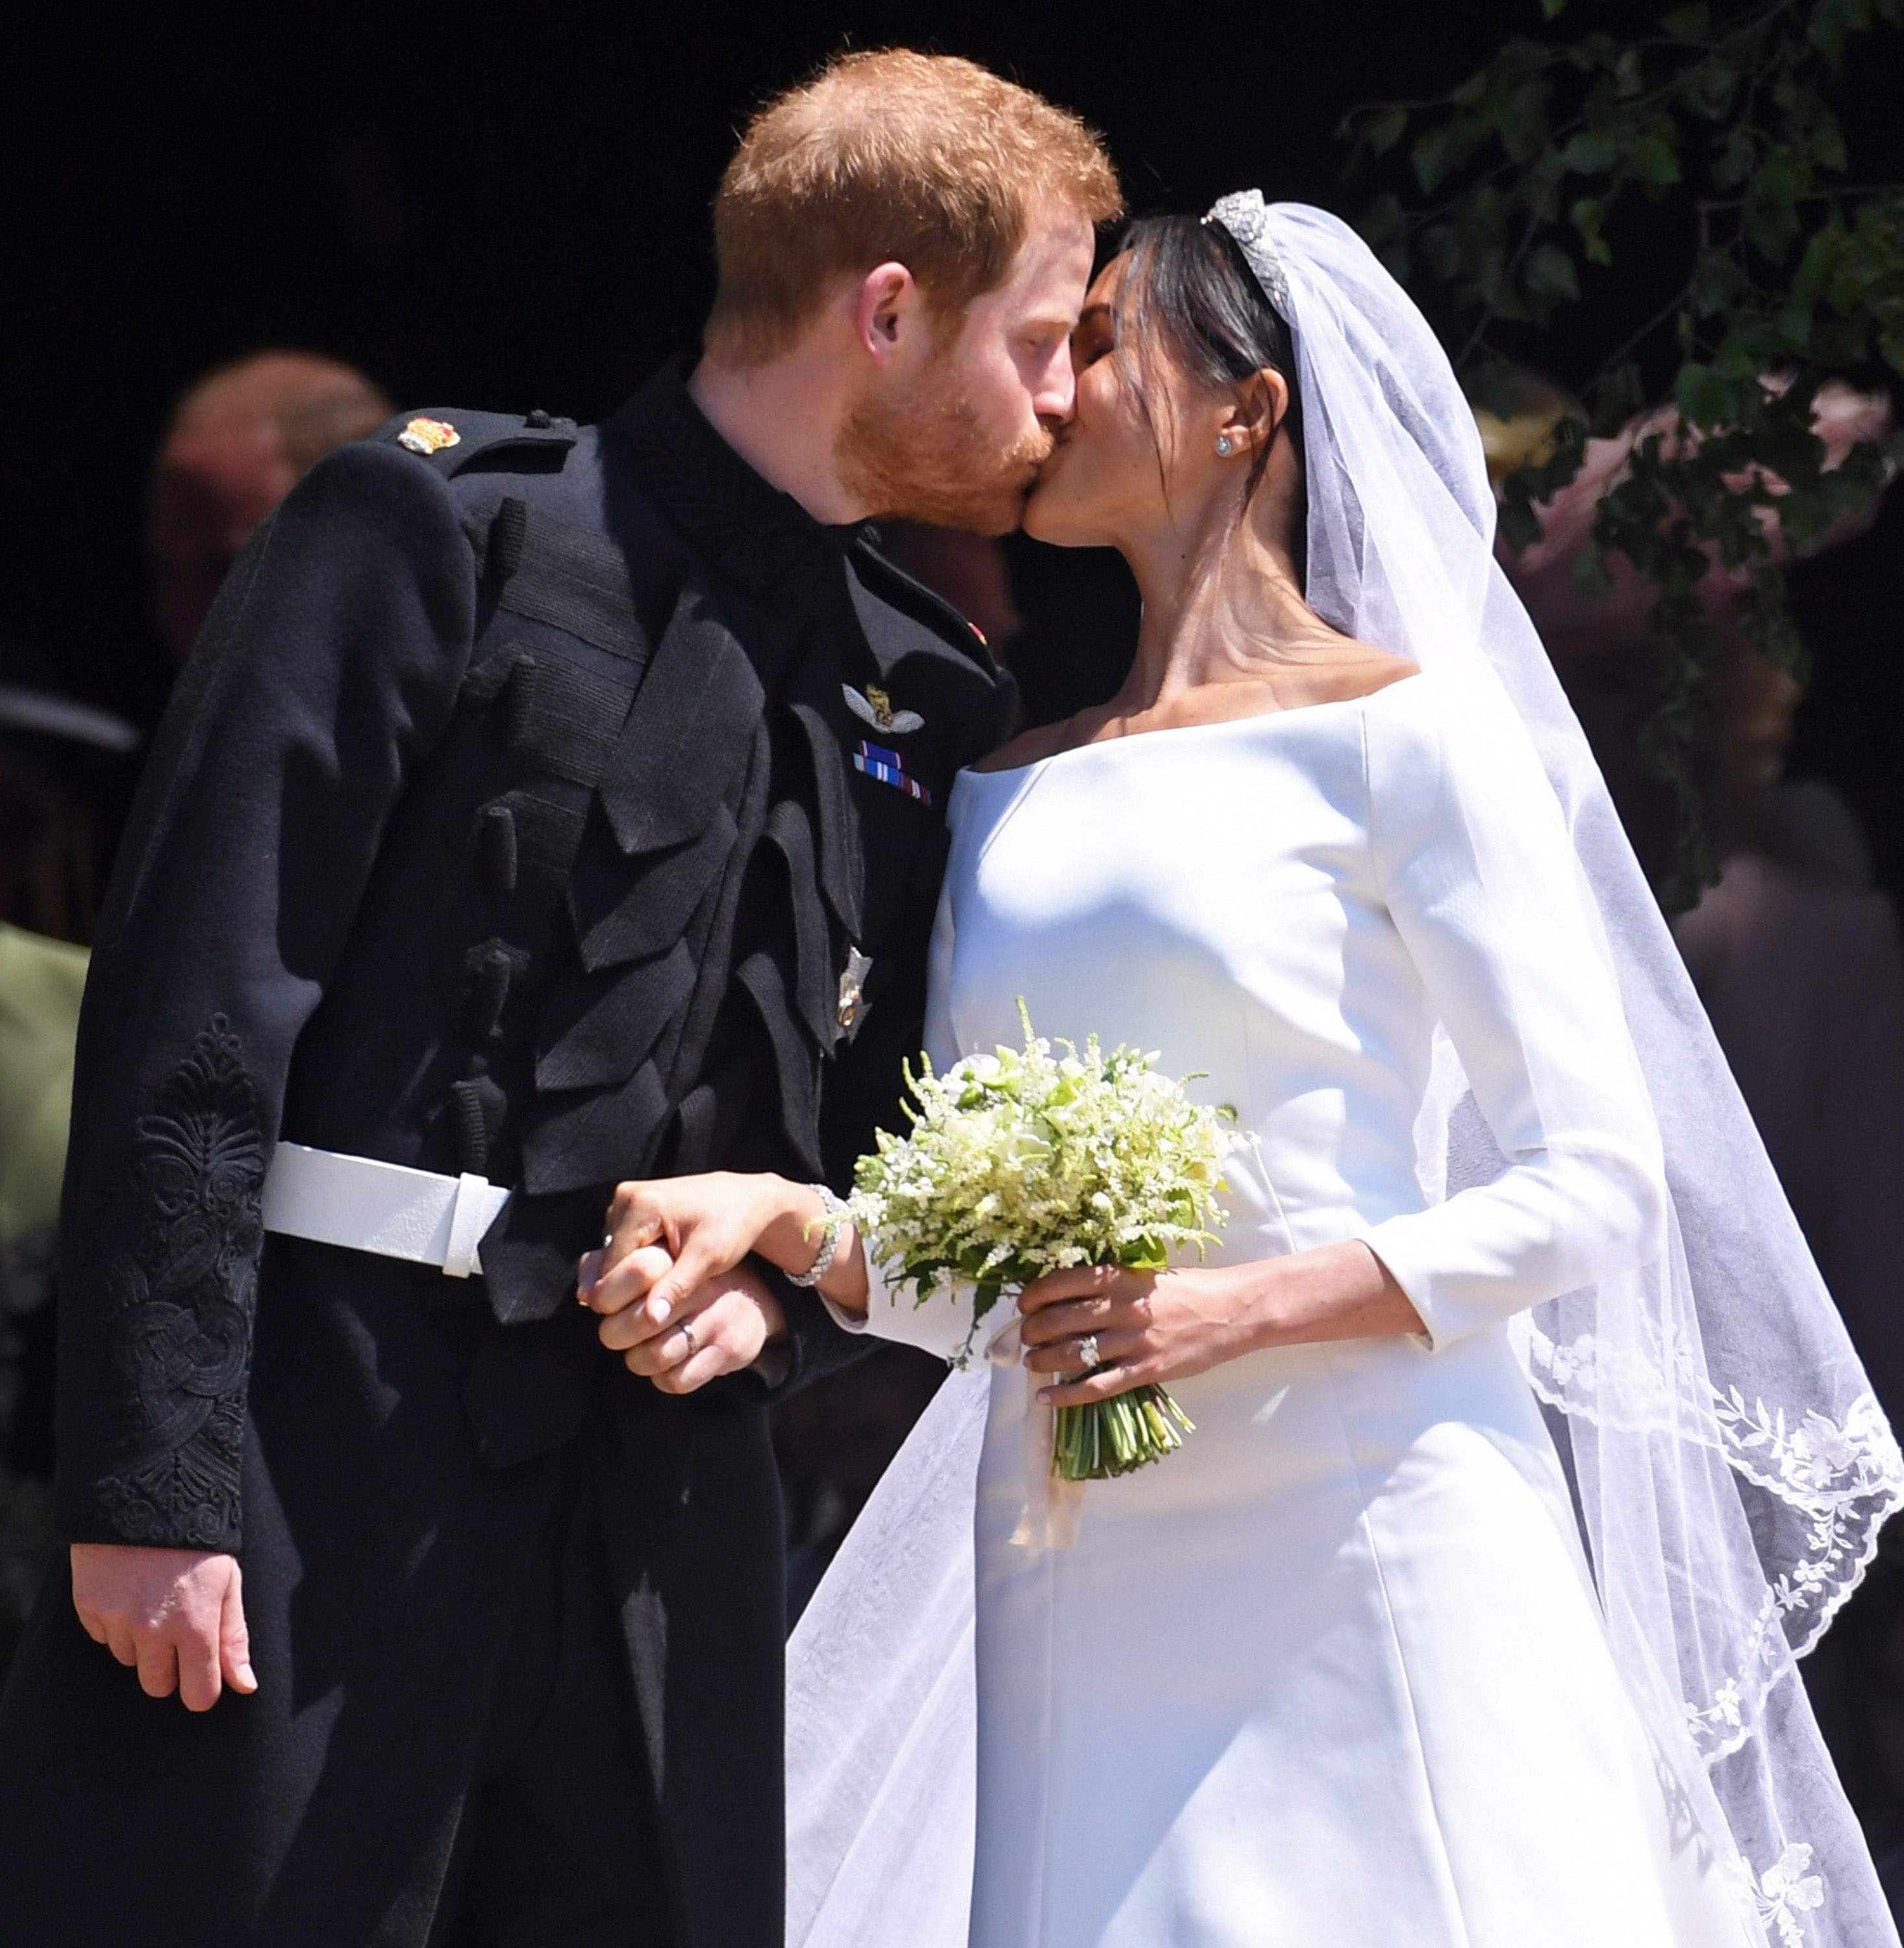 Harry and Meghan married in secret three days before the big ceremony